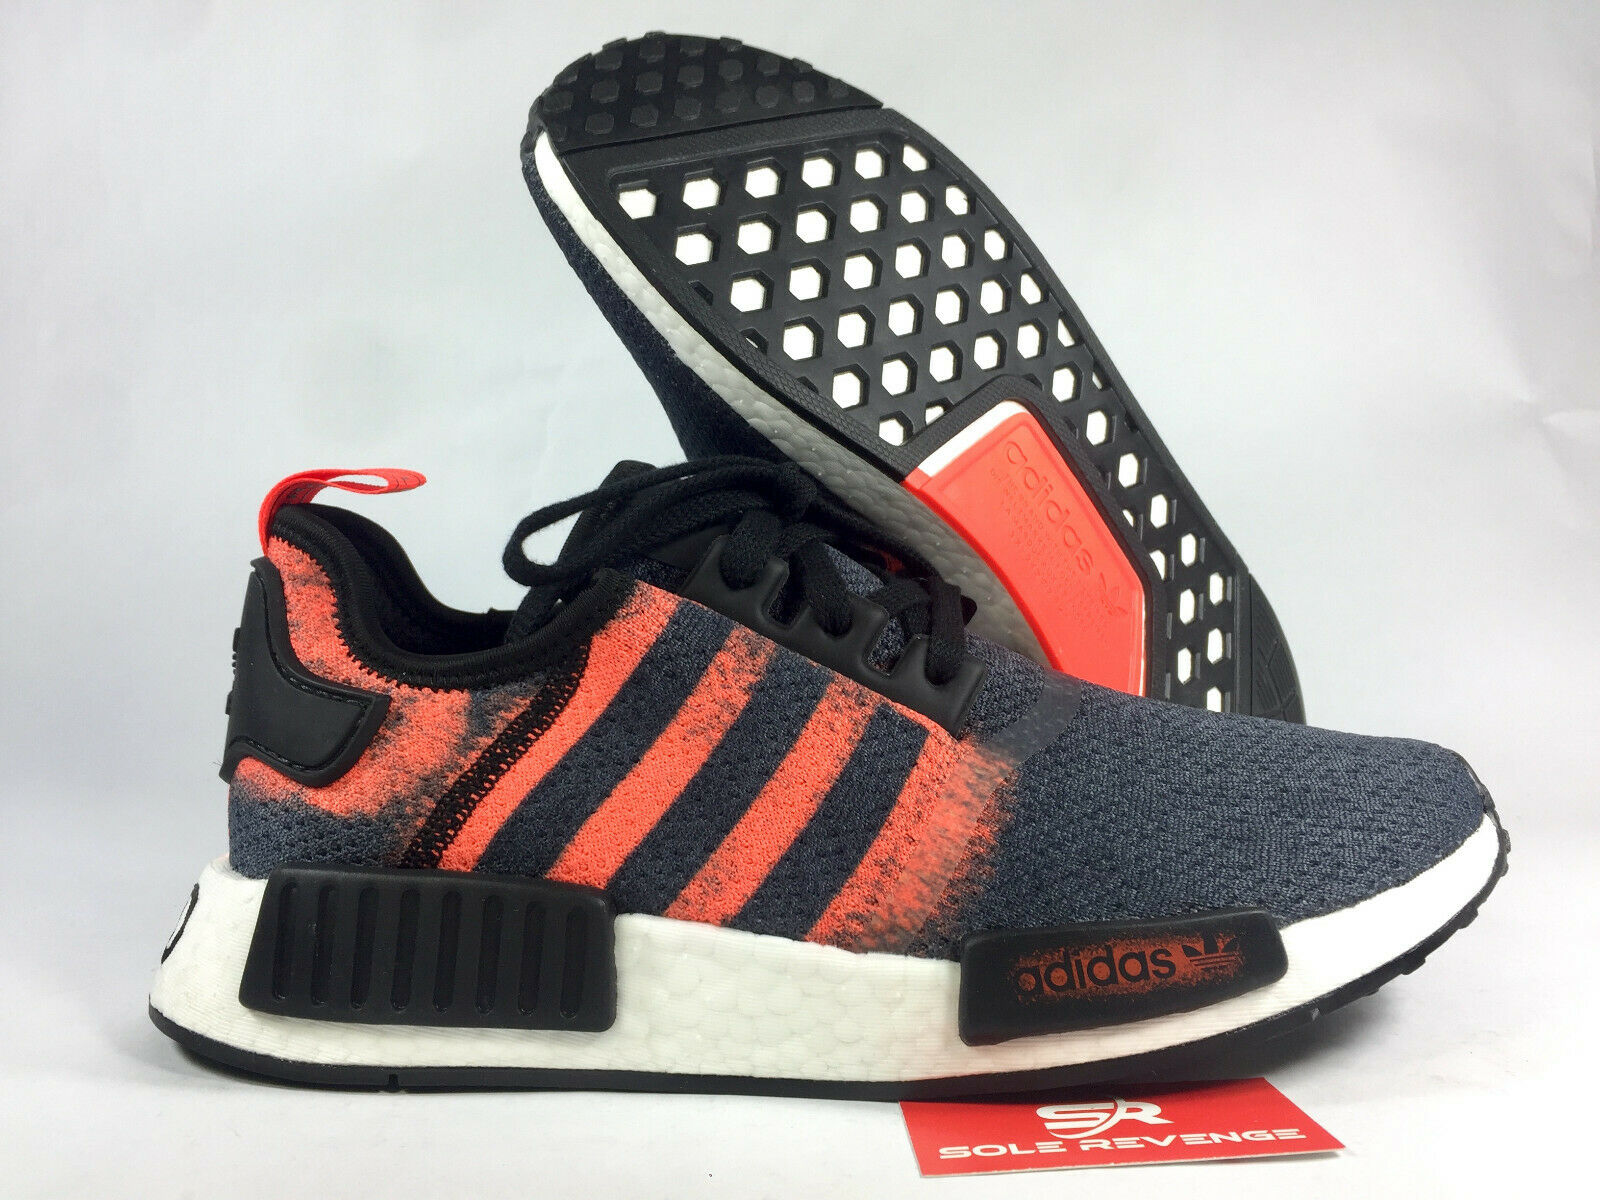 NEW adidas Originals NMD R1 BOOST G27917 Black Solar Red Black   Stencil Pack c1